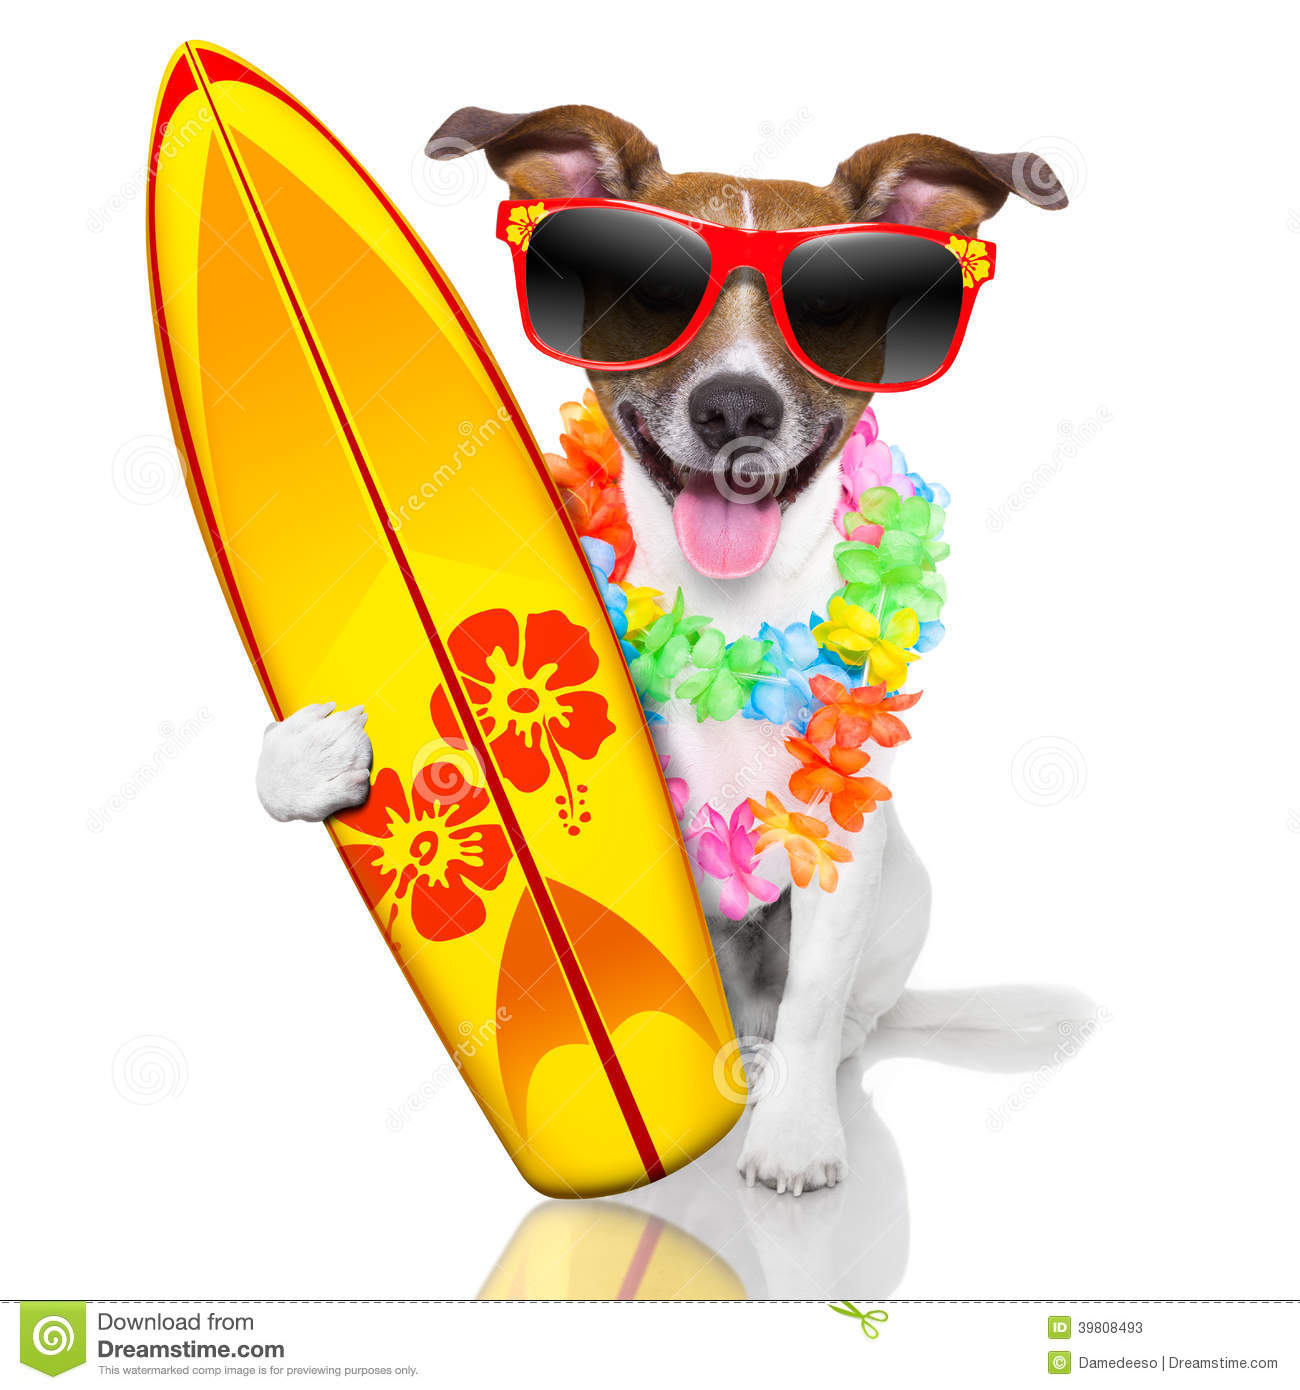 Dog on surfboard clipart jpg transparent Surfer Dog Stock Photo - Image: 39808493 jpg transparent